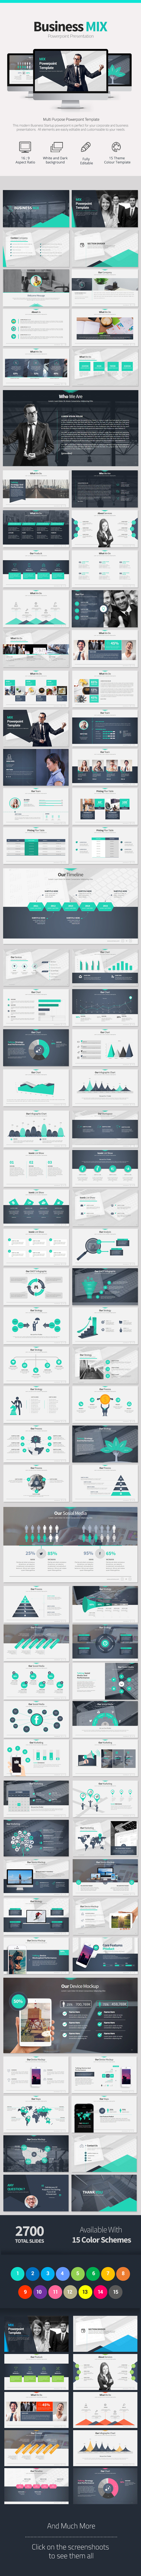 Business Mix Keynote Template - Keynote Templates Presentation Templates